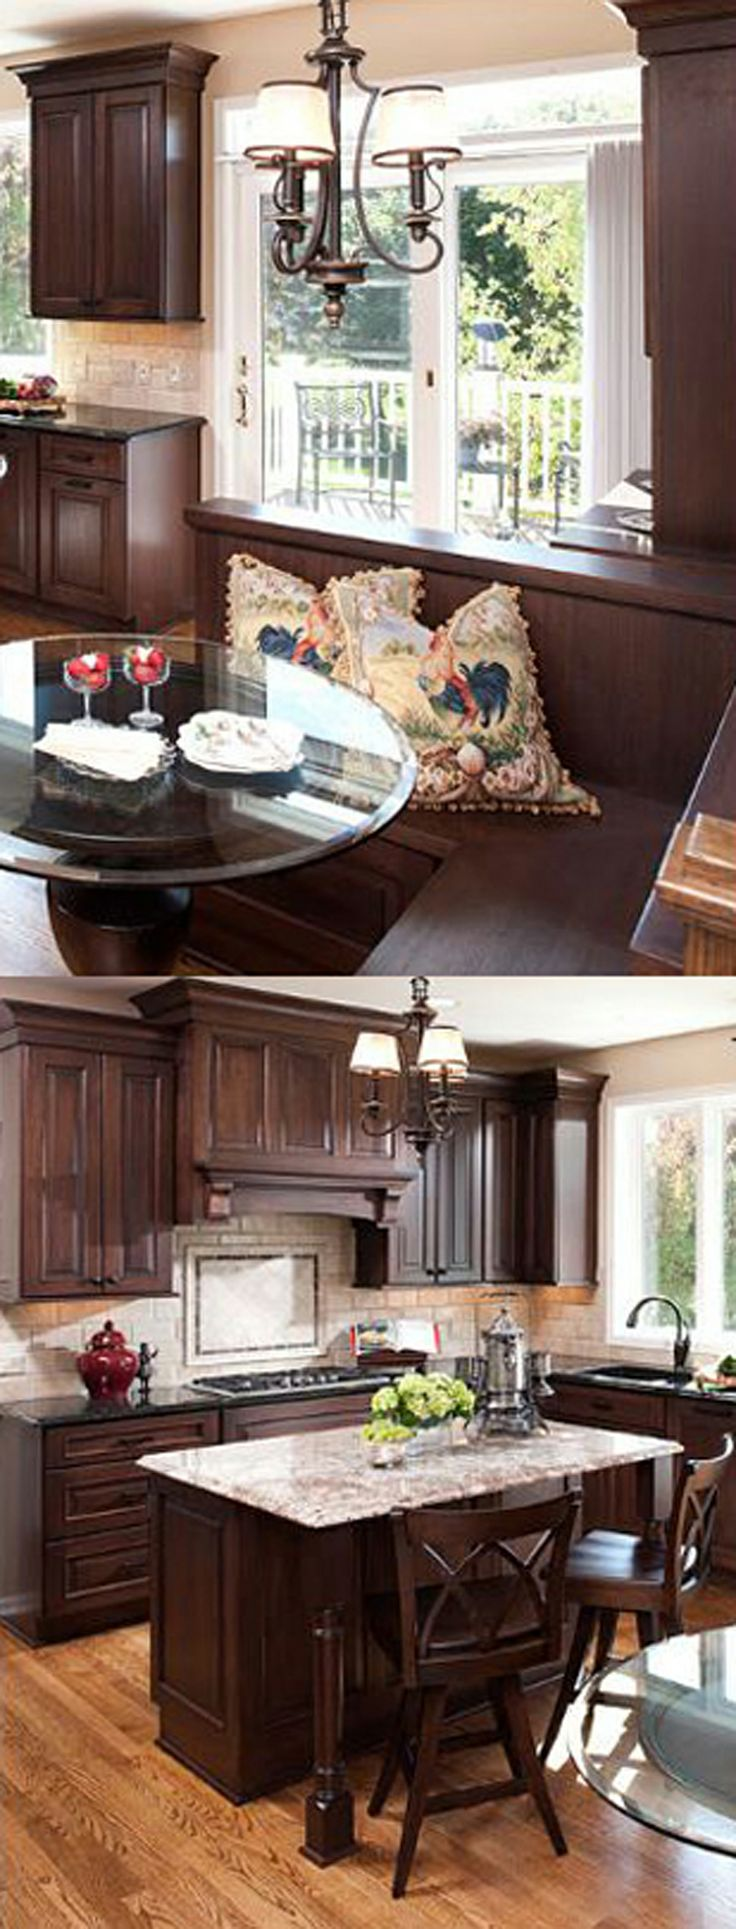 Traditional Kitchen Remodel With Dark Cabinetry And L Shaped Corner Breakfast Nook Designed By